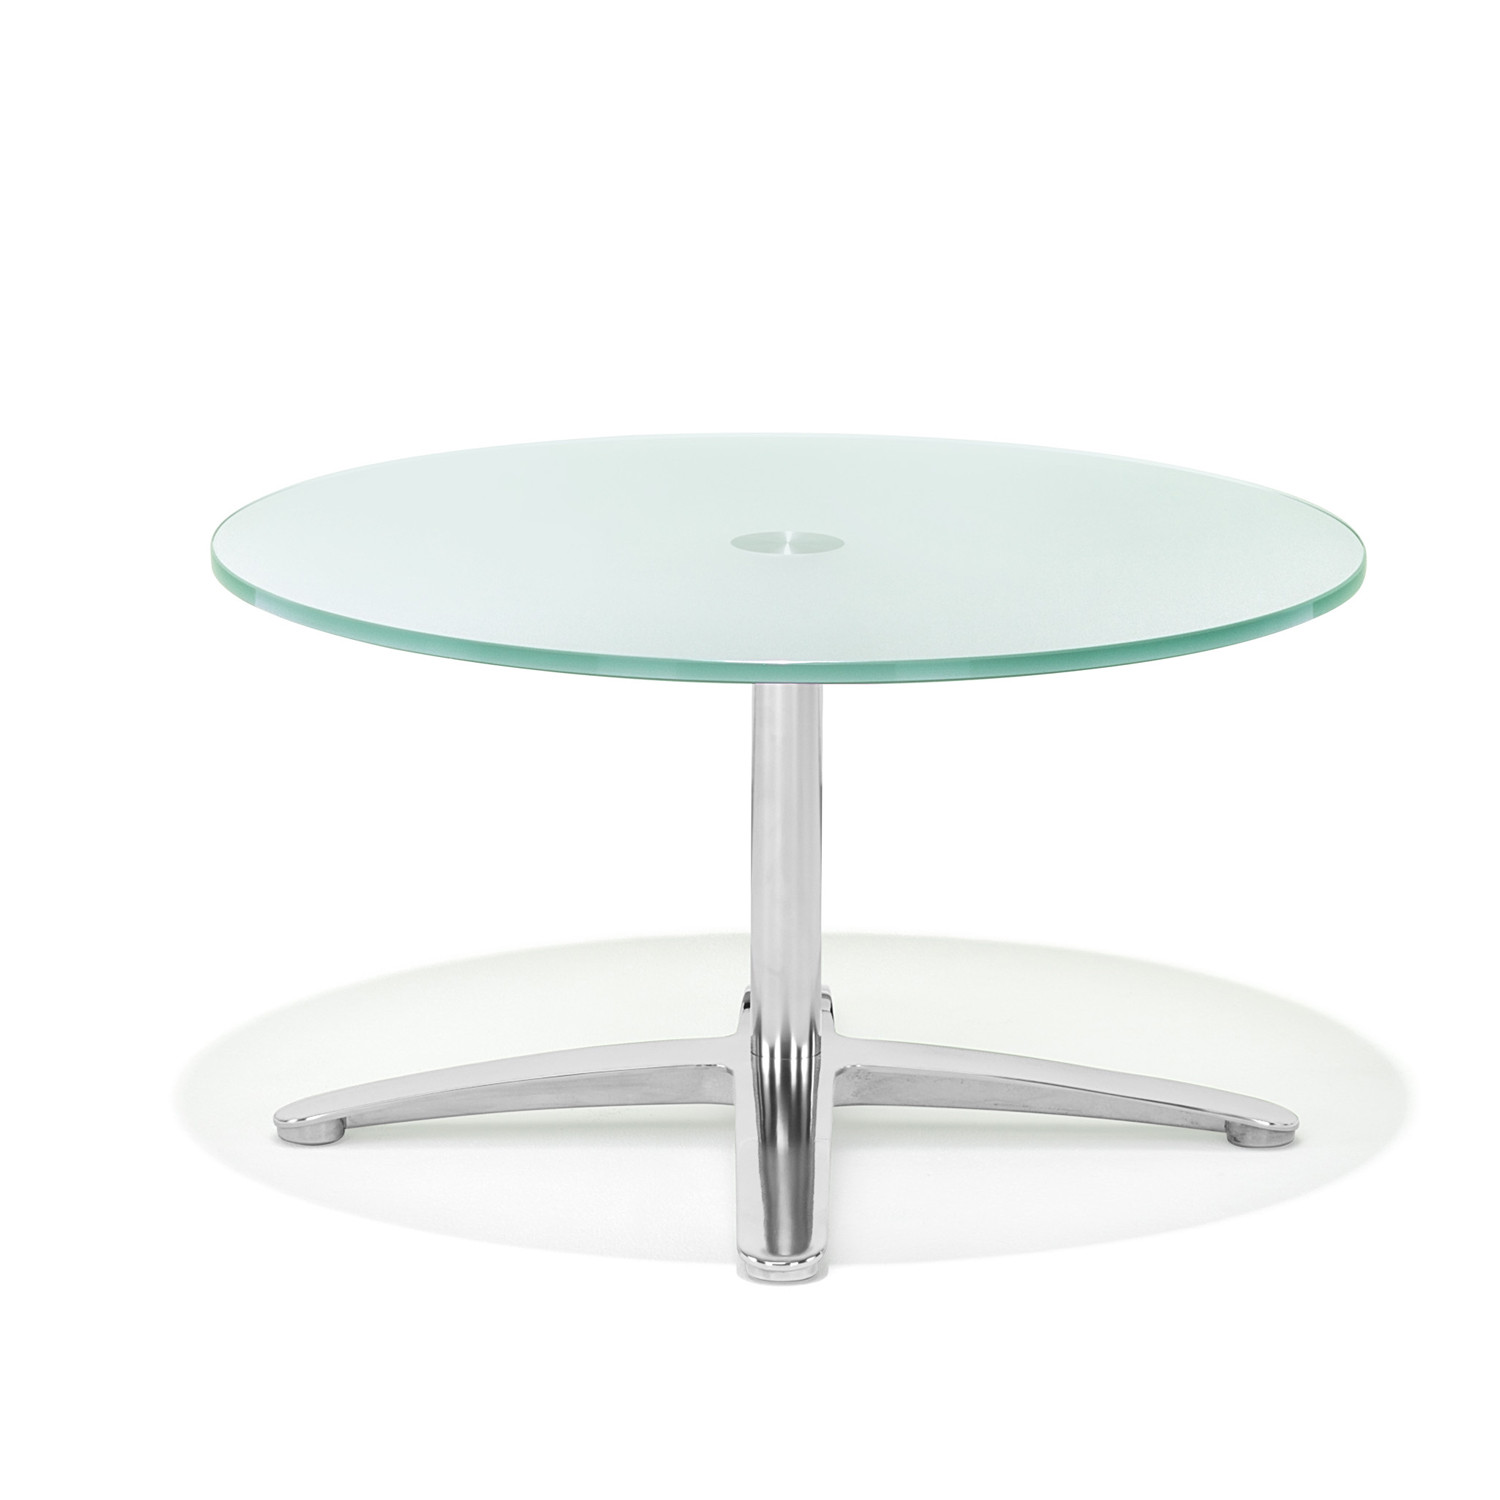 8200 Volpe Round Glass Table with cross base